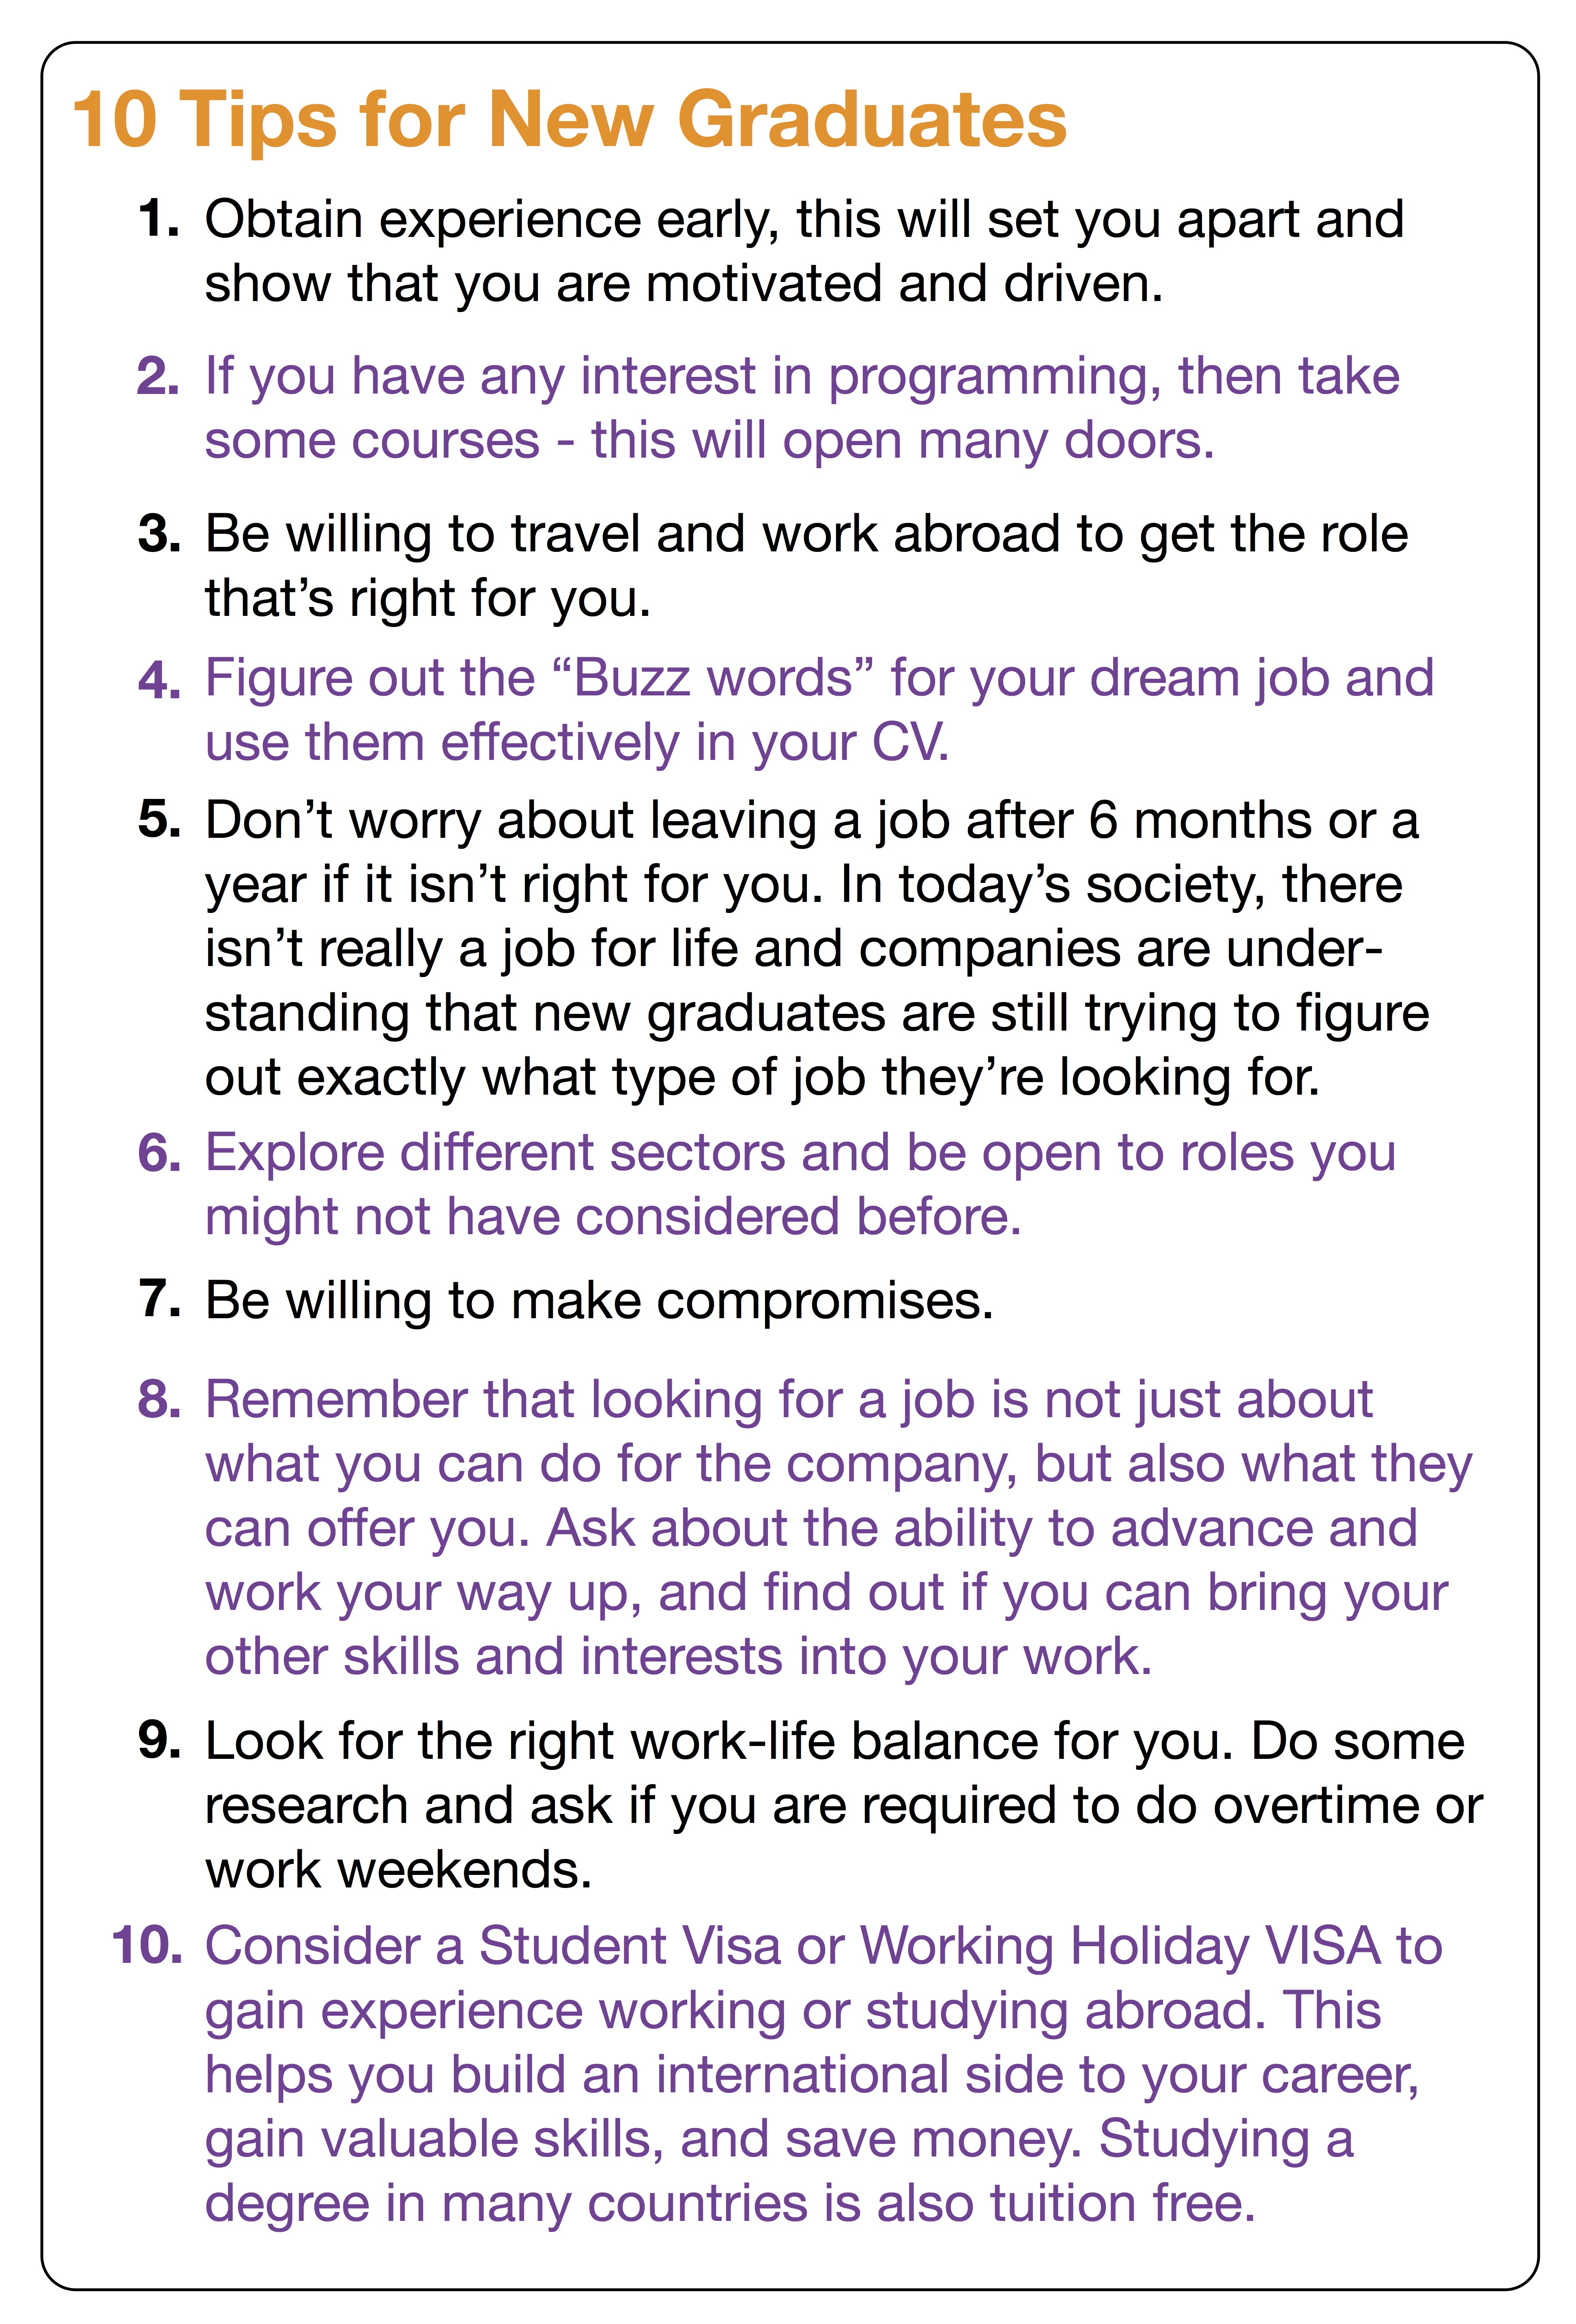 10_Tips_for_Graduates_Cropped2.jpg